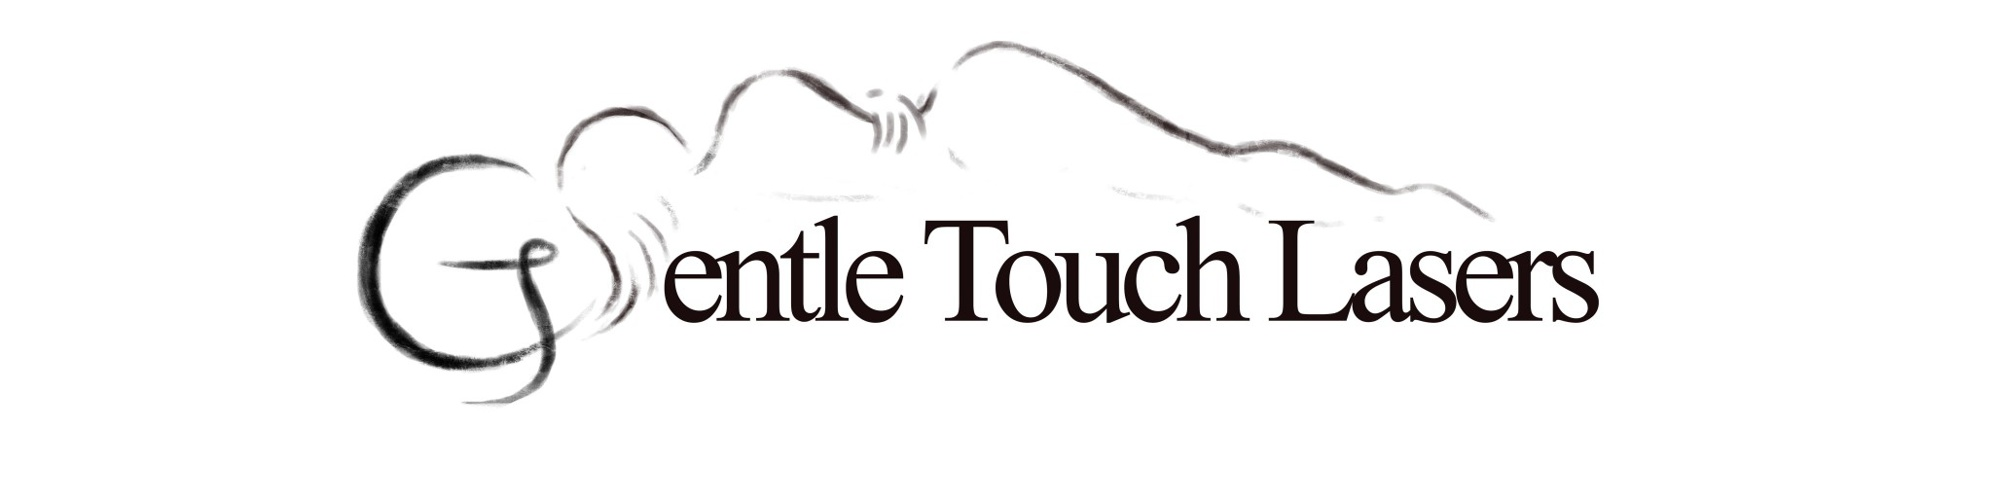 Gentle Touch Lasers